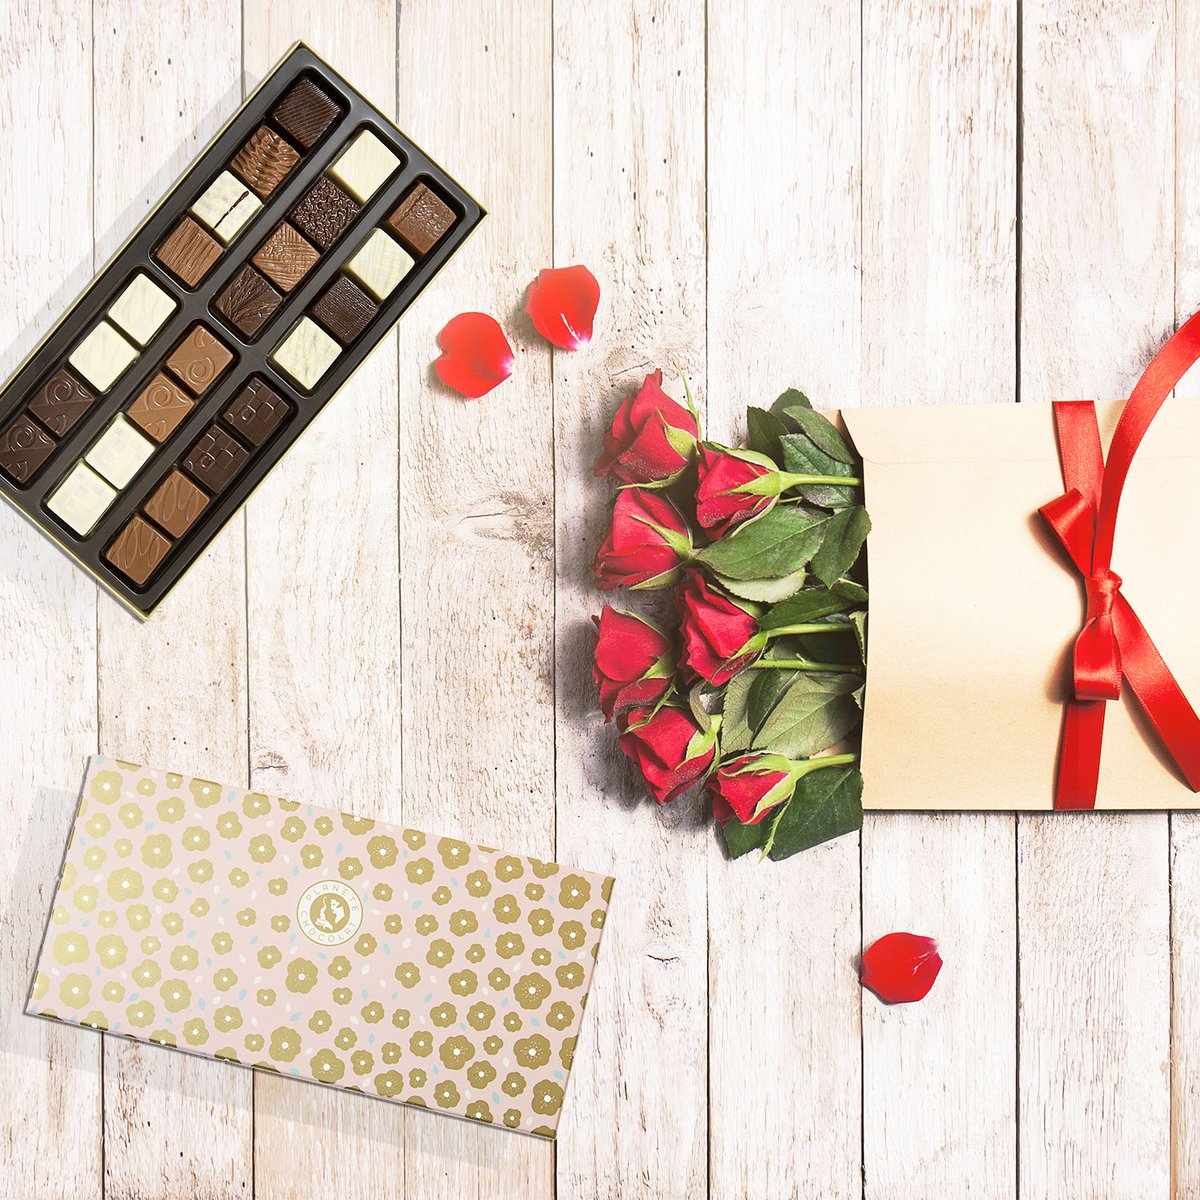 It&#39;s Mother&#39;s day in France soon! Why don&#39;t you add a chocolate box to your roses&#39;s bouquet ?     #mothersday #chocolate <br>http://pic.twitter.com/wpstXJhMDk